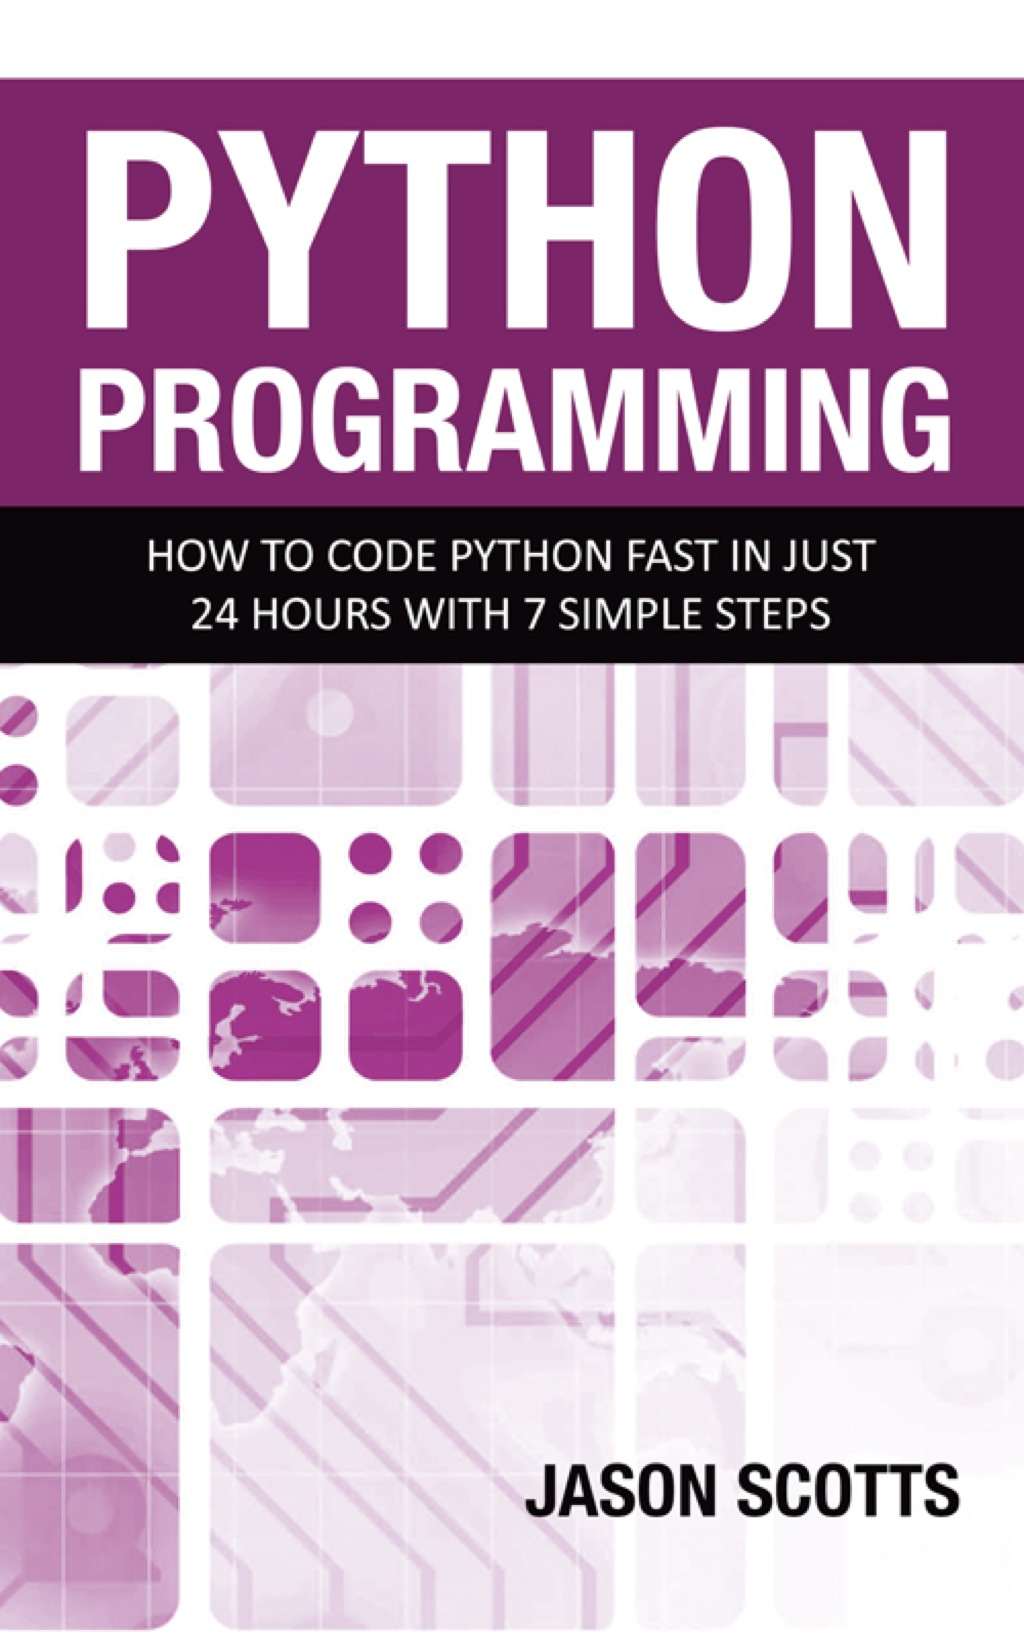 Python Programming : How to Code Python Fast In Just 24 Hours With 7 Simple Steps (eBook)